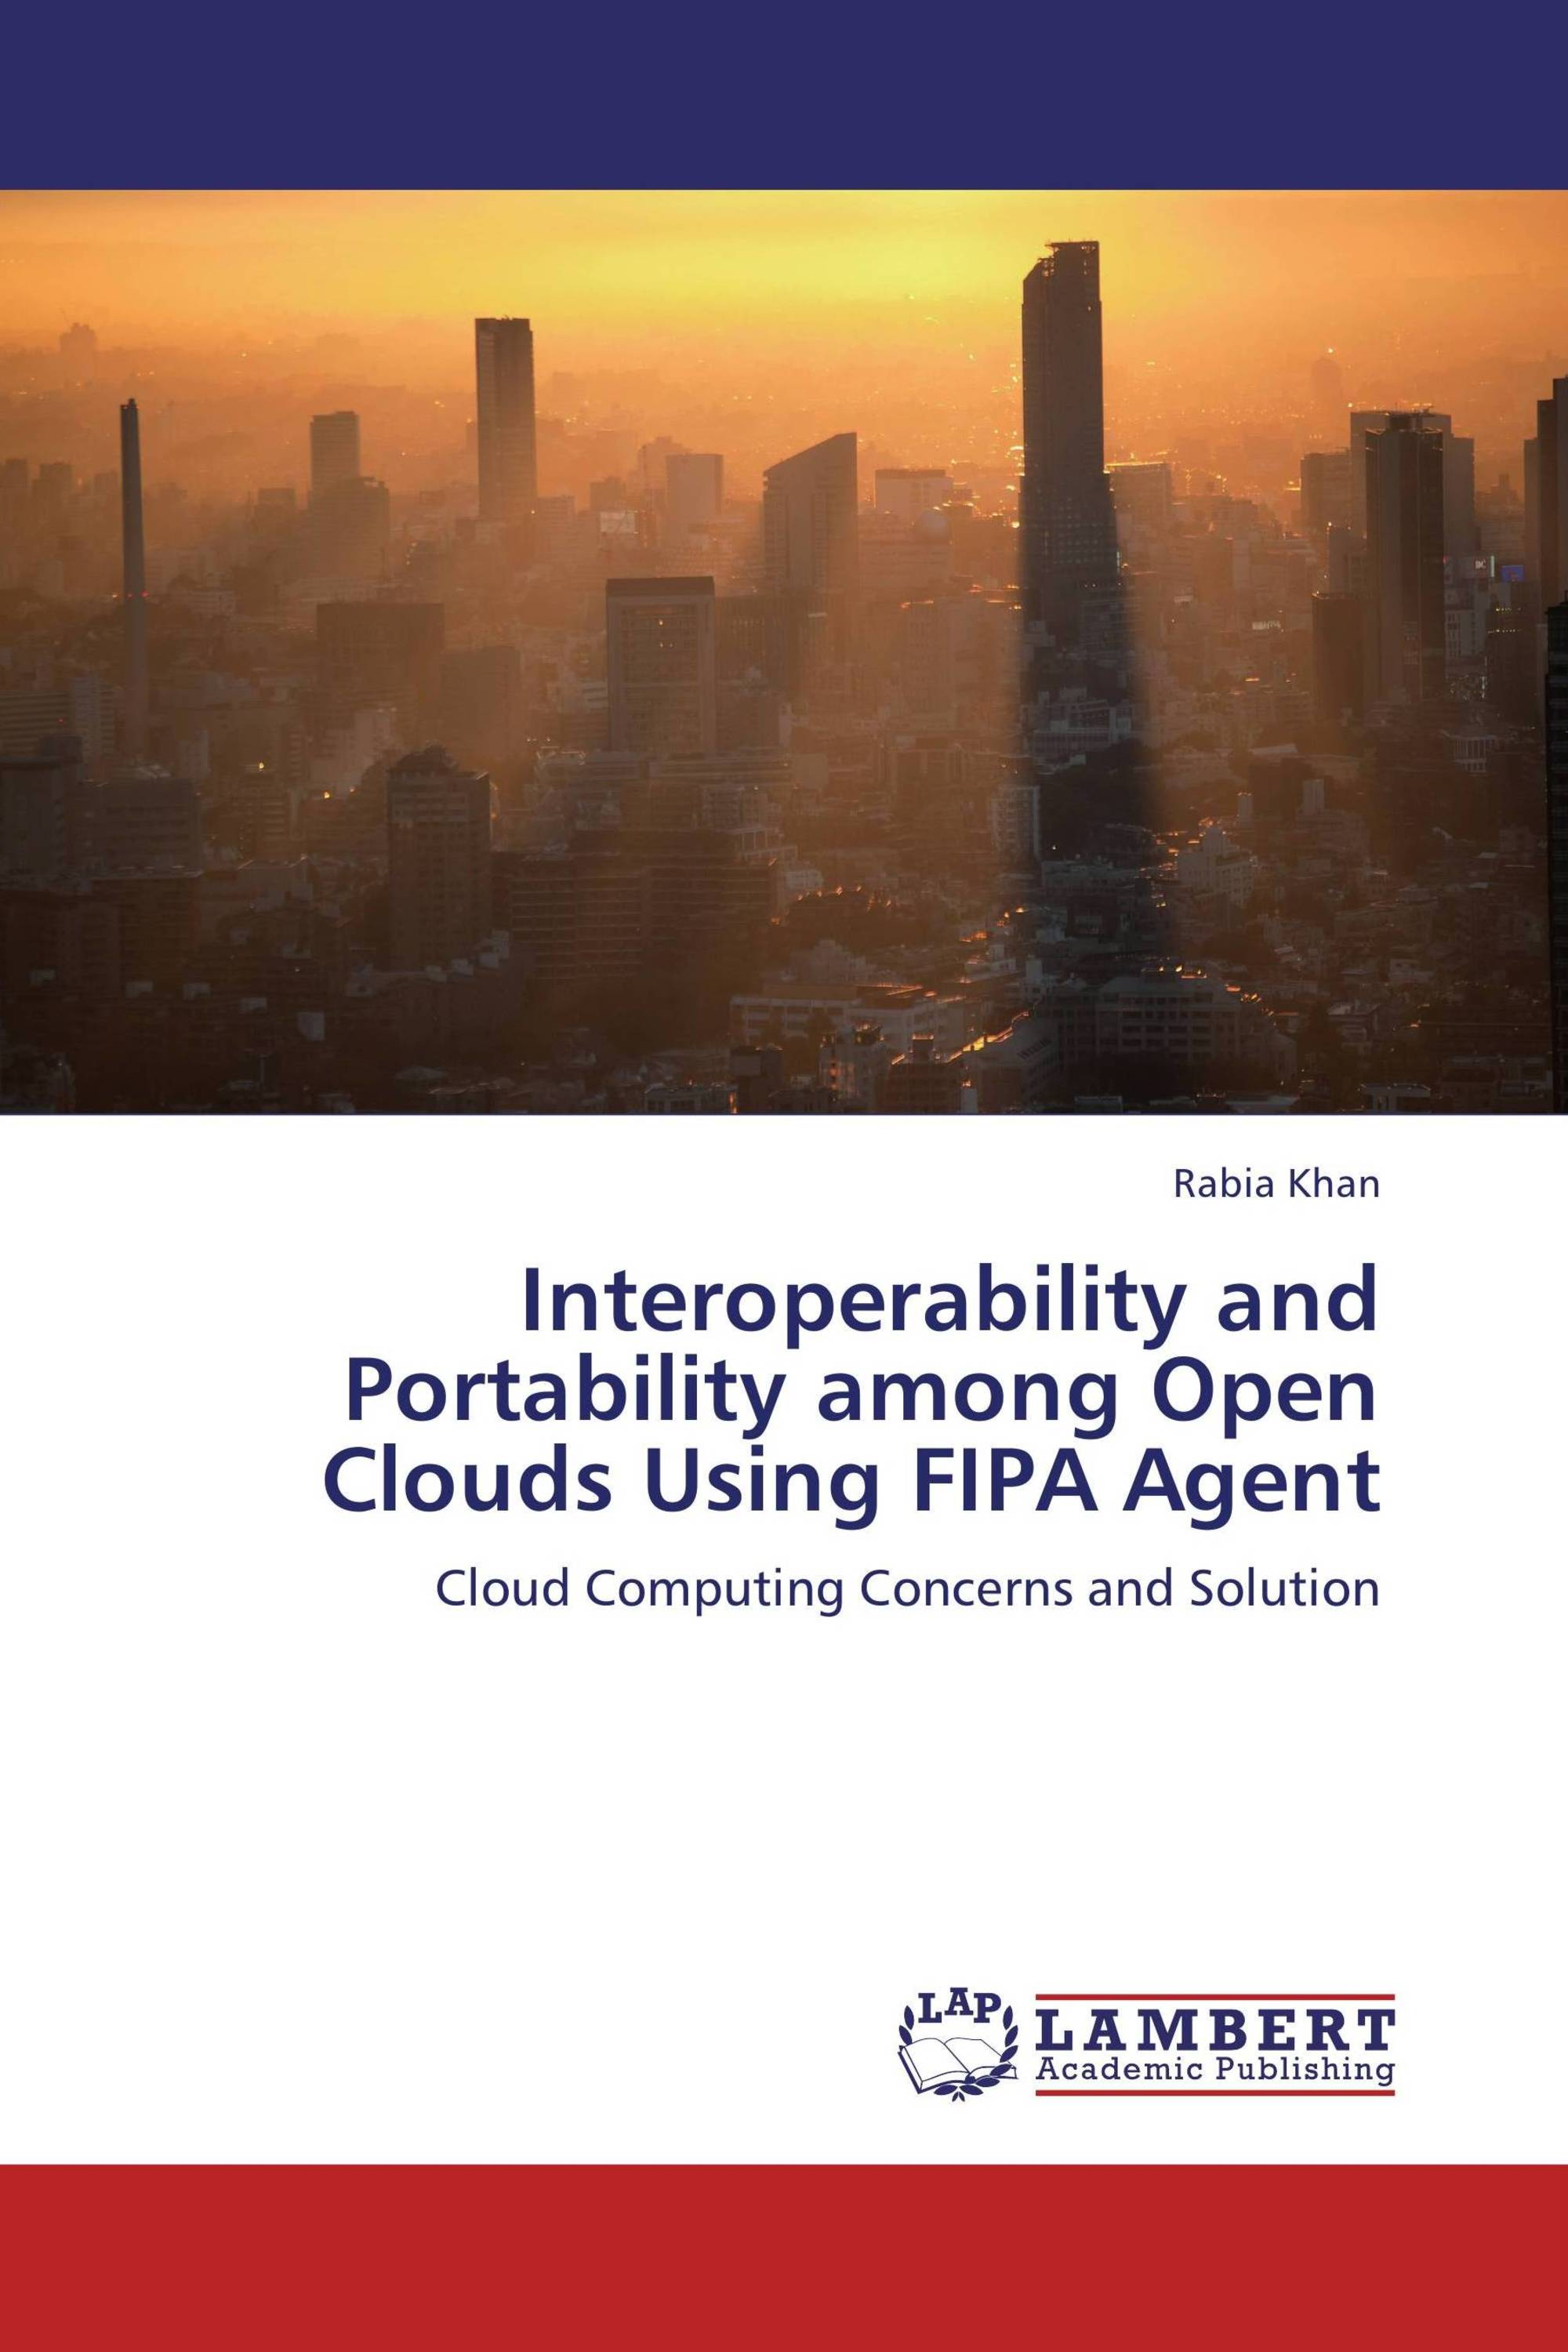 Interoperability and Portability among Open Clouds Using FIPA Agent